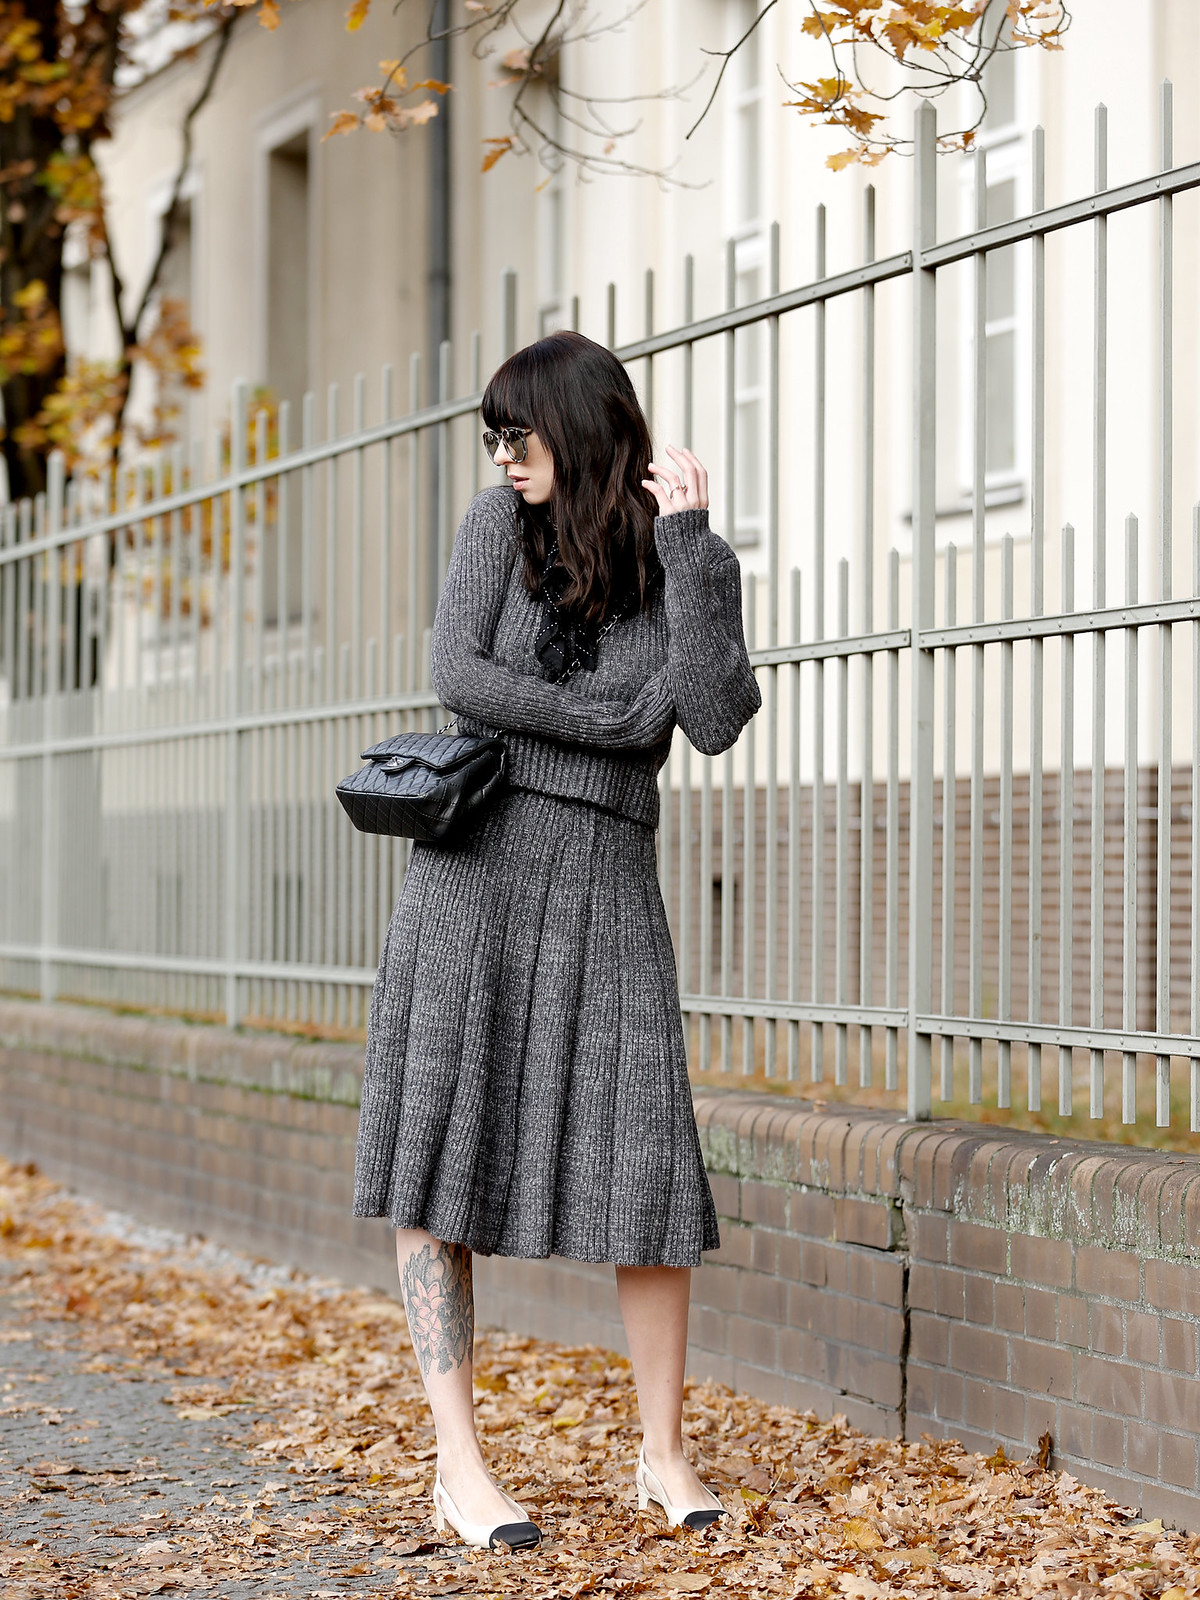 chicwish grey knit combo skirt chic 40s minimal soft winter autumn chanel 2.55 double flap bag slingback pumps sunglasses mirror fashionblogger germany berlin düsseldorf ricarda schernus modeblogger cats & dogs styleblog 6